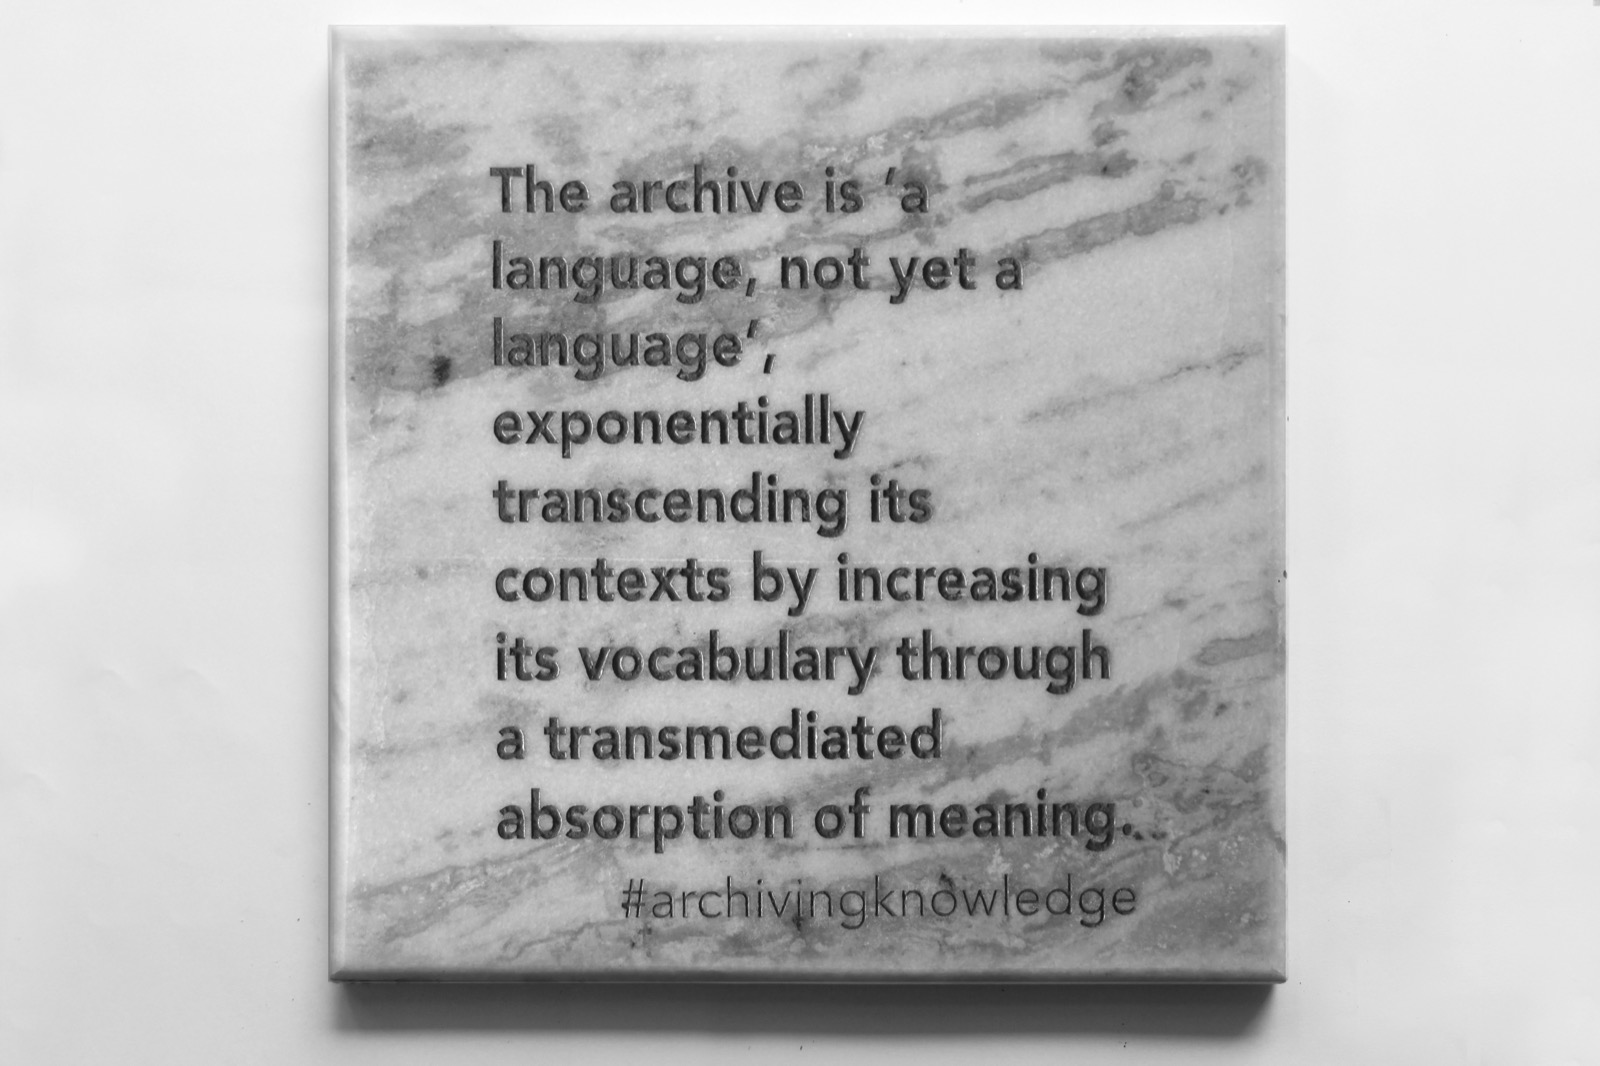 The archive is 'a language, not yet a language', exponentially transcending its contexts by increasing its vocabulary through a transmediated absorption of meaning, From the series: Archiving Knowledge, hand engraved marble, 2018